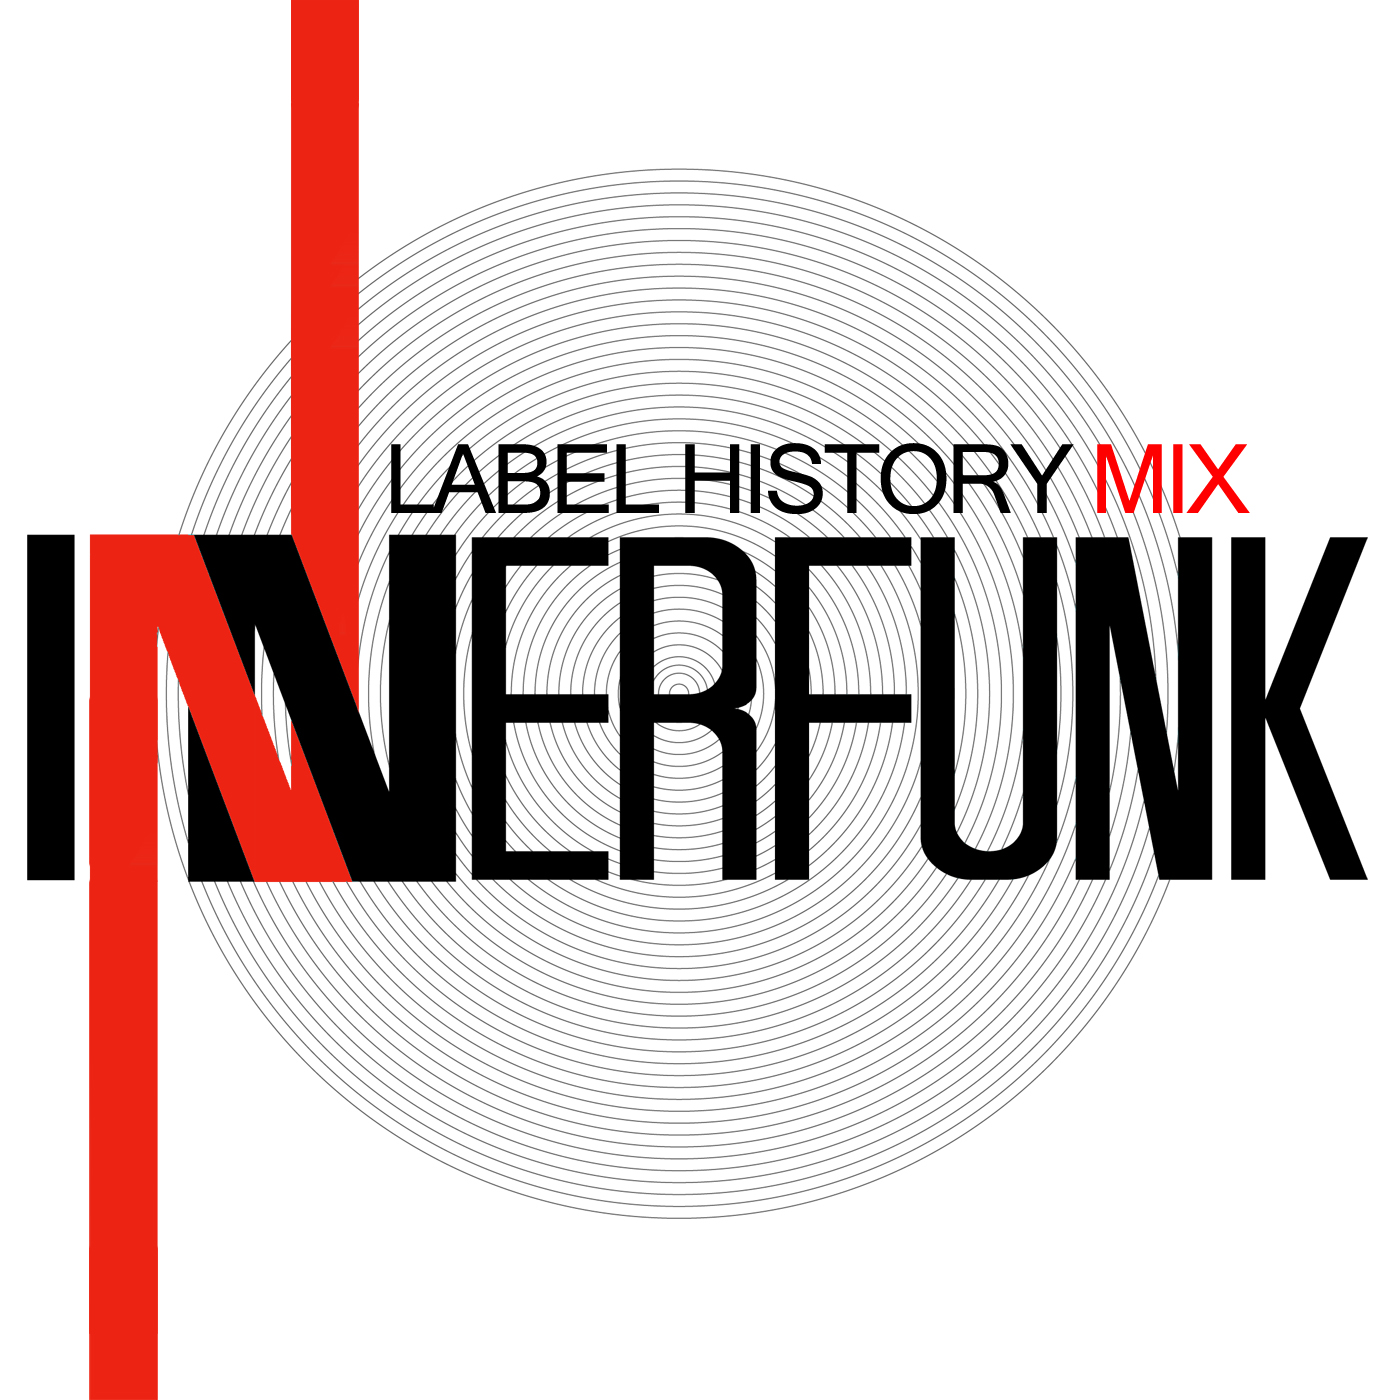 INNERFUNK LABEL HISTORY MIX